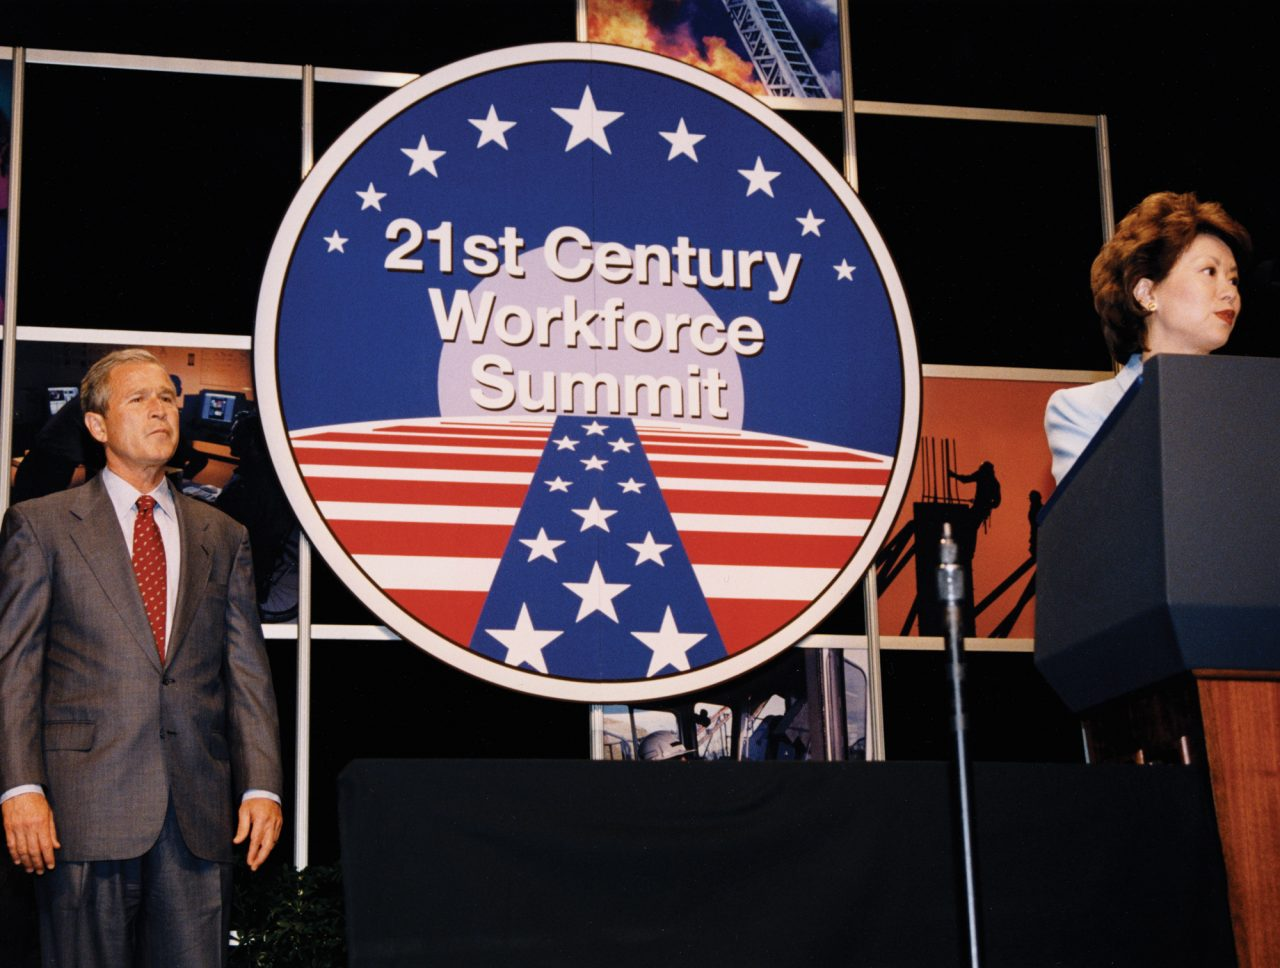 Secretary of Labor Elaine Chao hosts the National Summit on the 21st Century Workforce with President George W. Bush as keynote speaker.